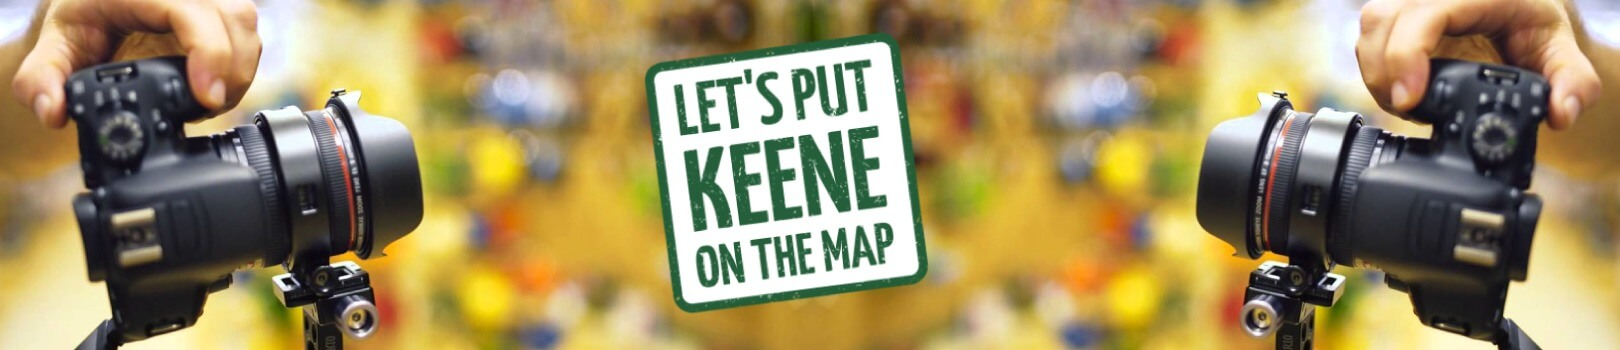 sign that says let's put keene on the map